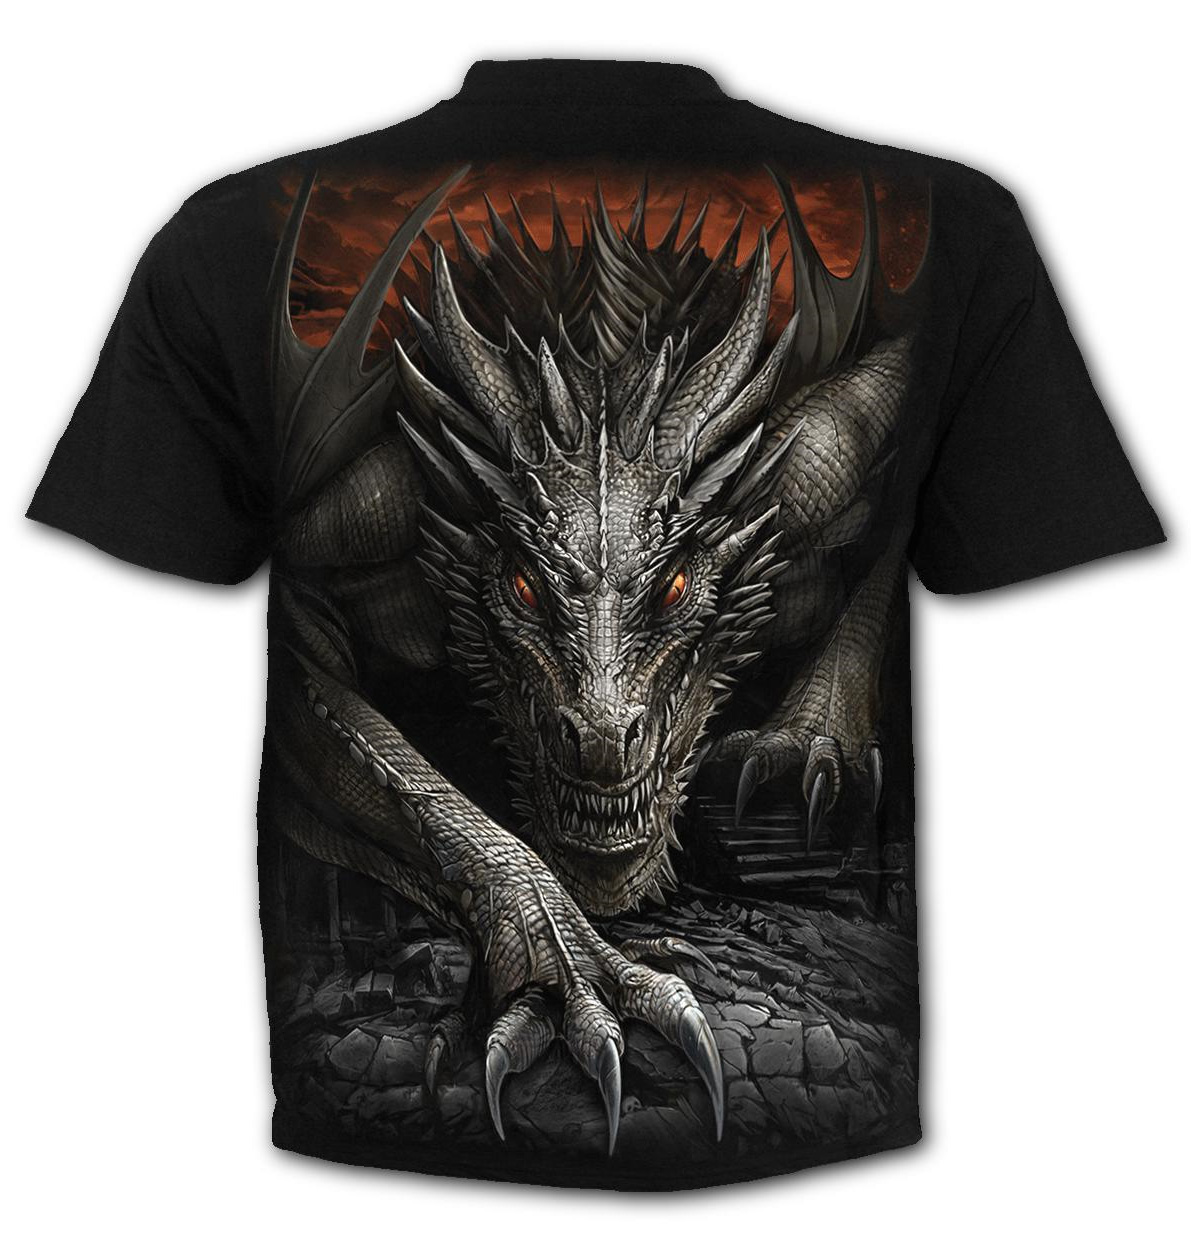 SPIRAL-Direct-Unisex-T-Shirt-Biker-Goth-MAJESTIC-DRACO-Dragon-All-Sizes thumbnail 21